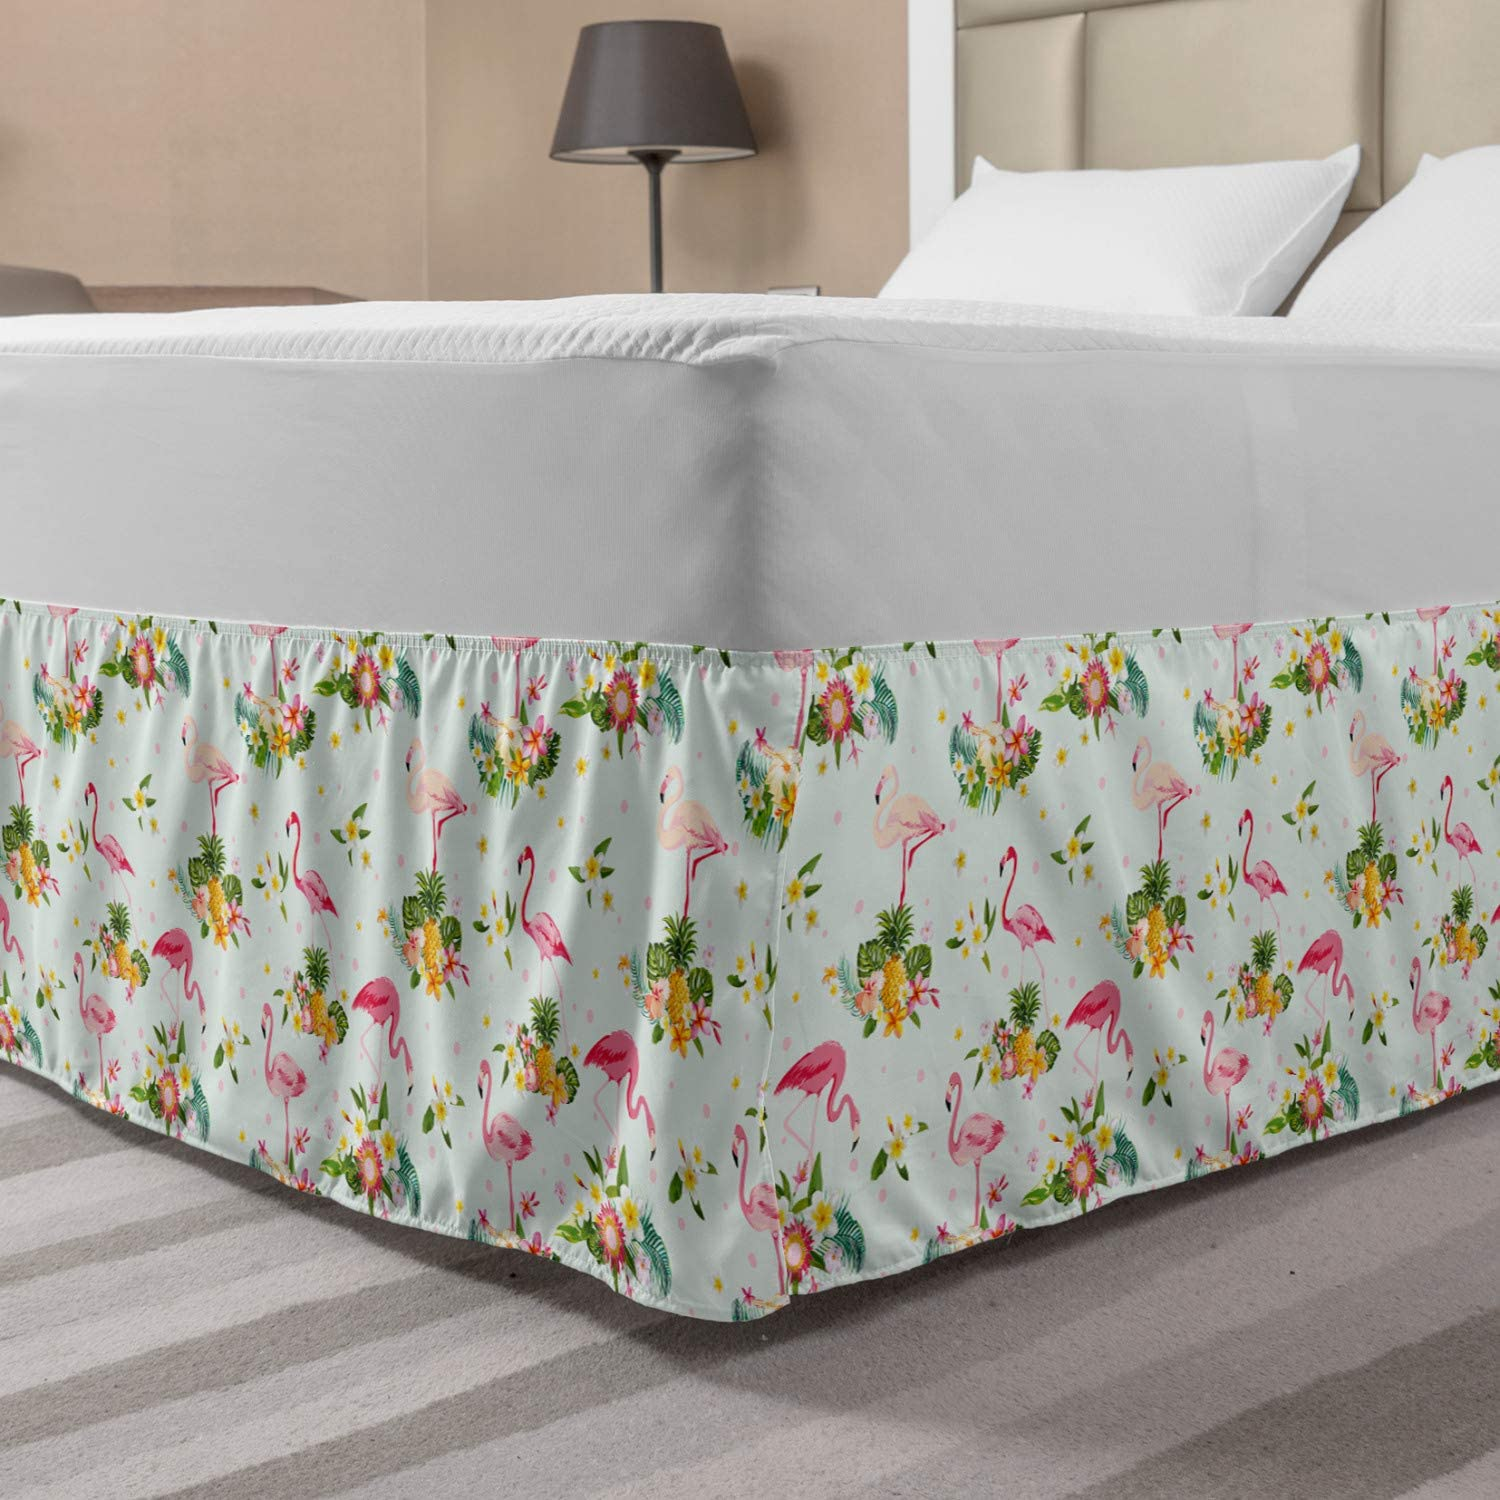 Ambesonne Flamingo Elastic Bed Skirt, Flourishing Fresh Flowers with Pineapples and Dots Retro Style Birds Romantic, Wrap Around Fabric Bedskirt Dust Ruffle for Bedroom, King, Pink Teal